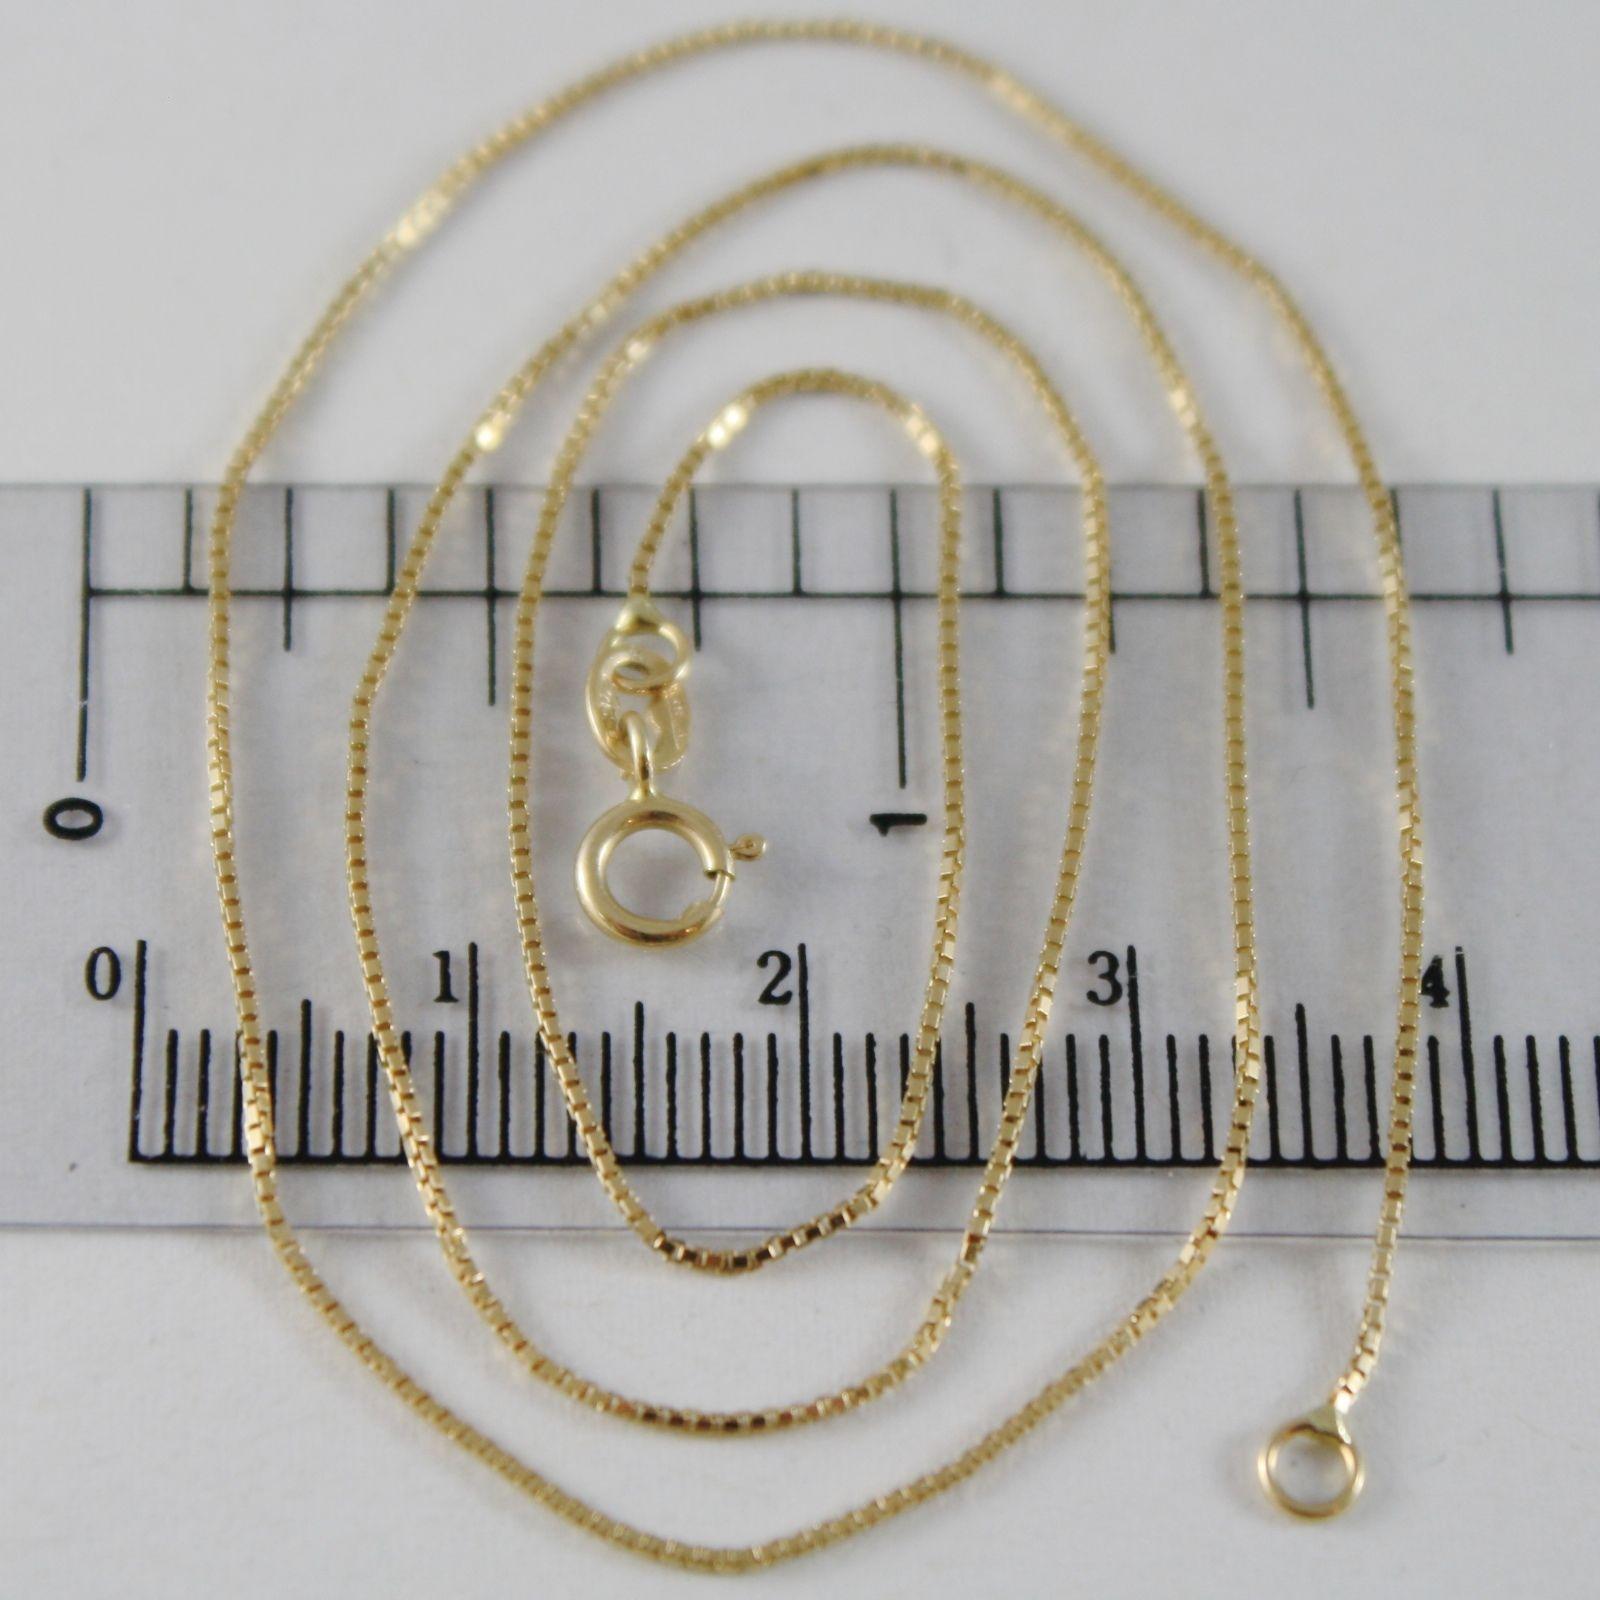 18K YELLOW GOLD CHAIN MINI 0.8 MM VENETIAN SQUARE LINK 17.70 INCH MADE IN ITALY